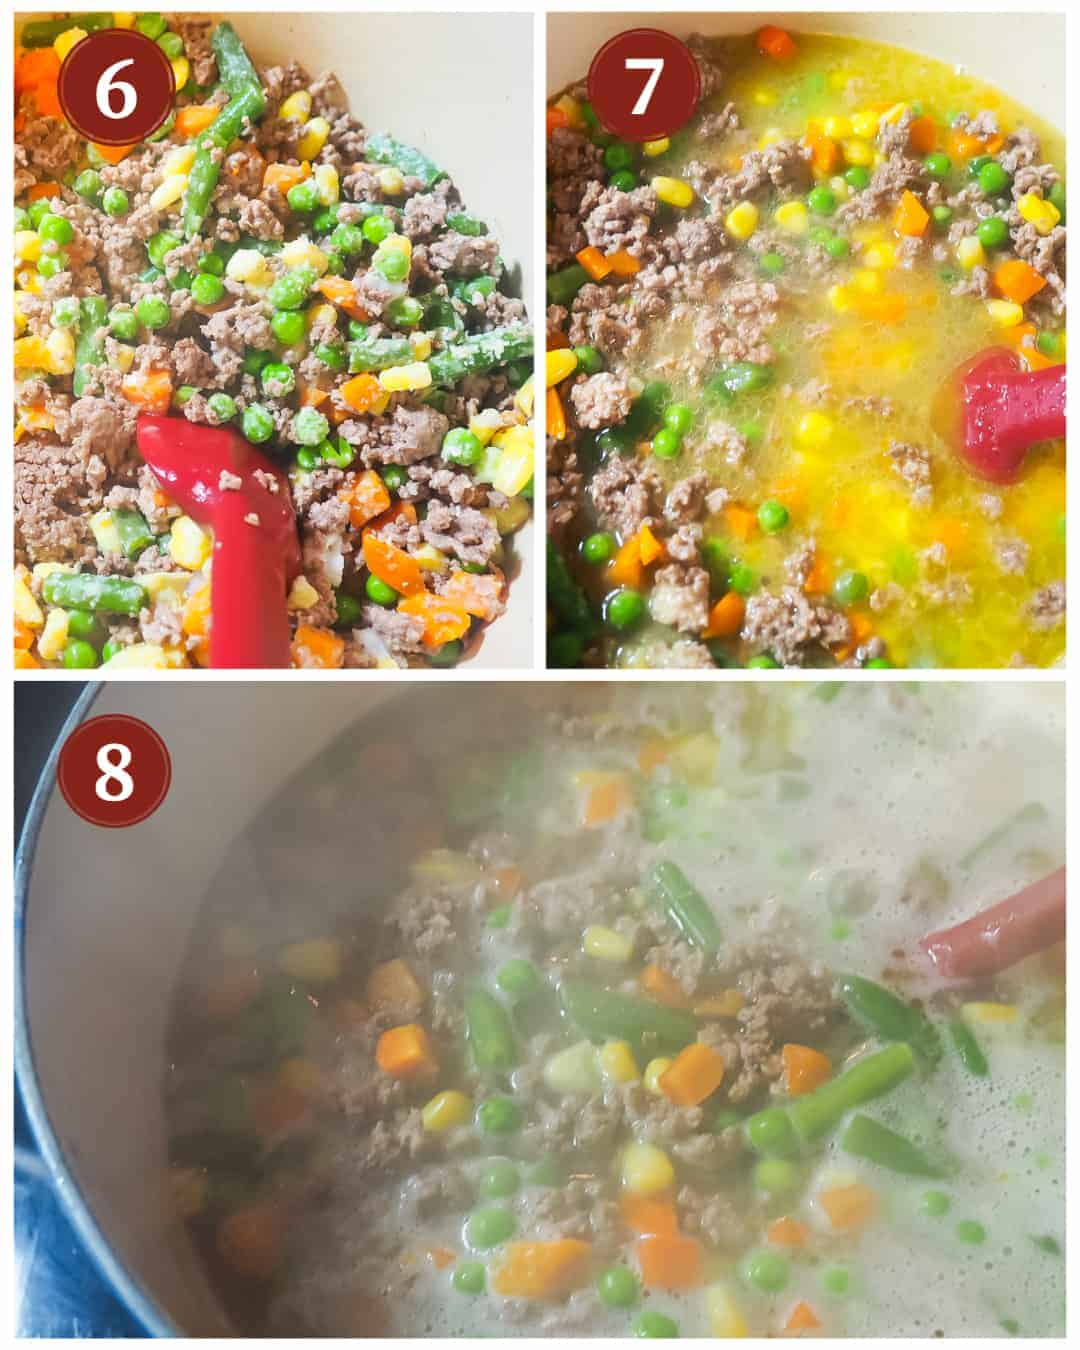 A process collage of images for making homemade dog food, steps 8 - 9.